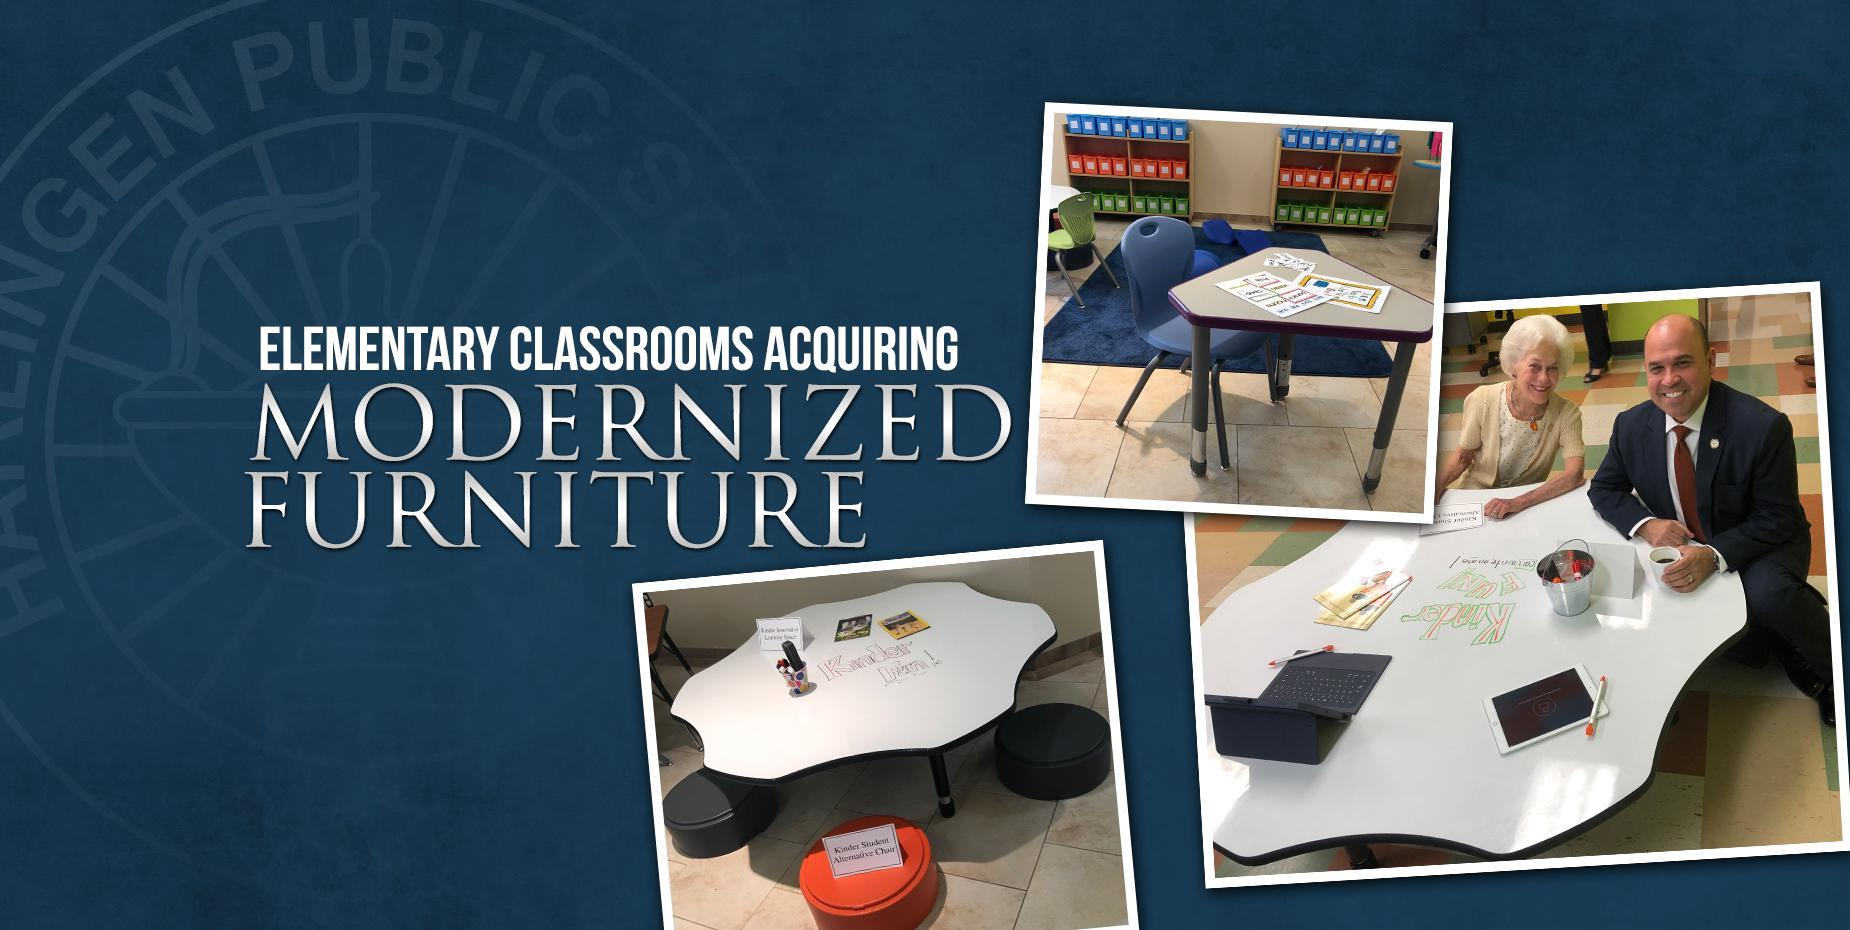 Elementary Classrooms acqyiring Modernized Furniture